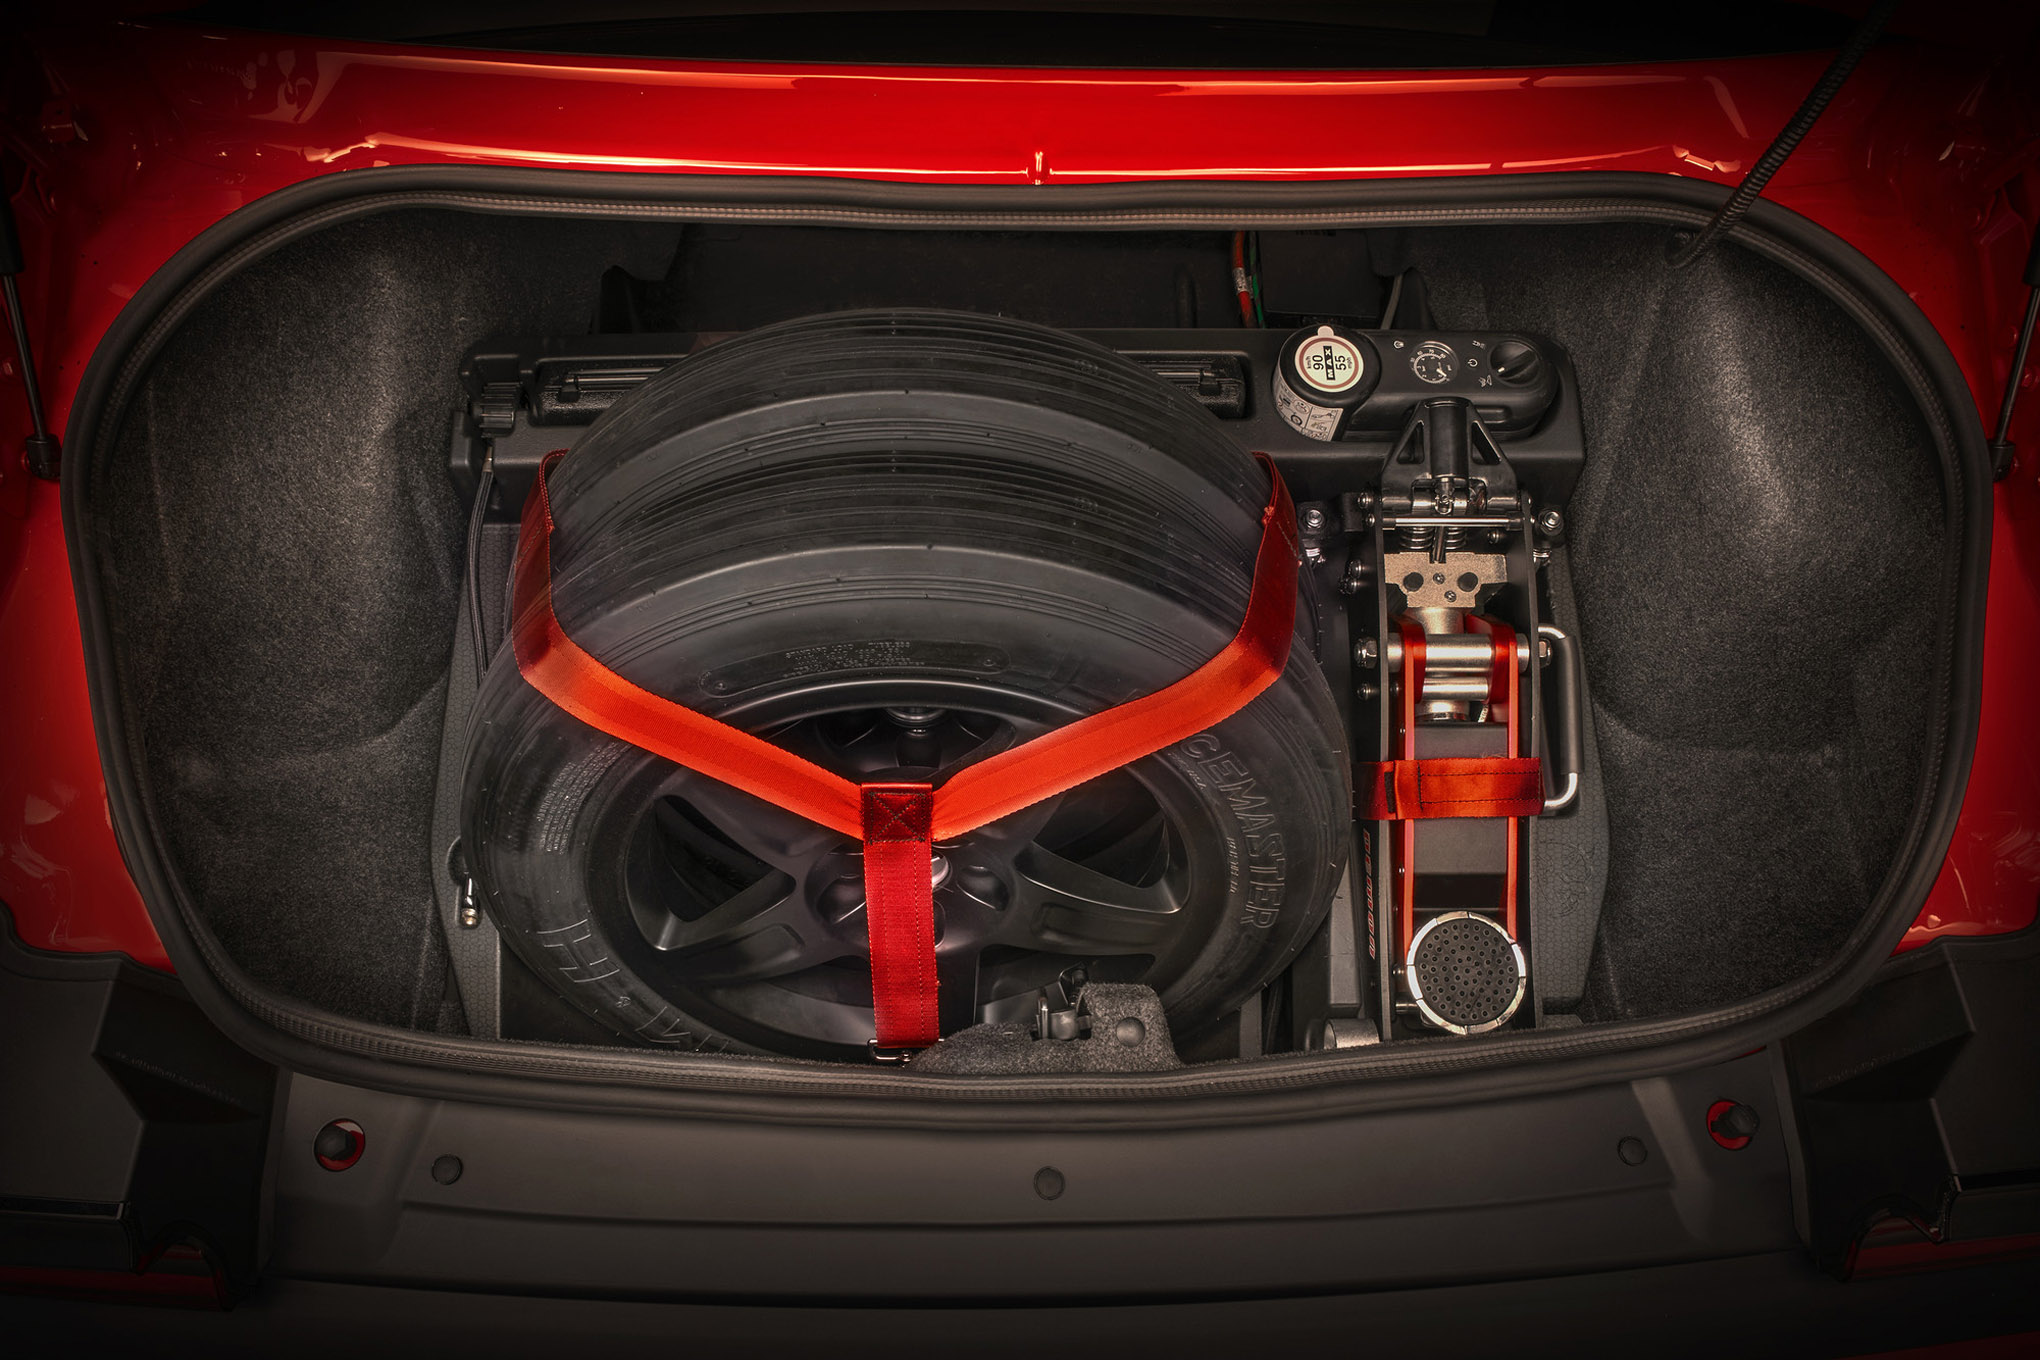 2018 Dodge Challenger SRT Demon Drag Kit features a foam case th